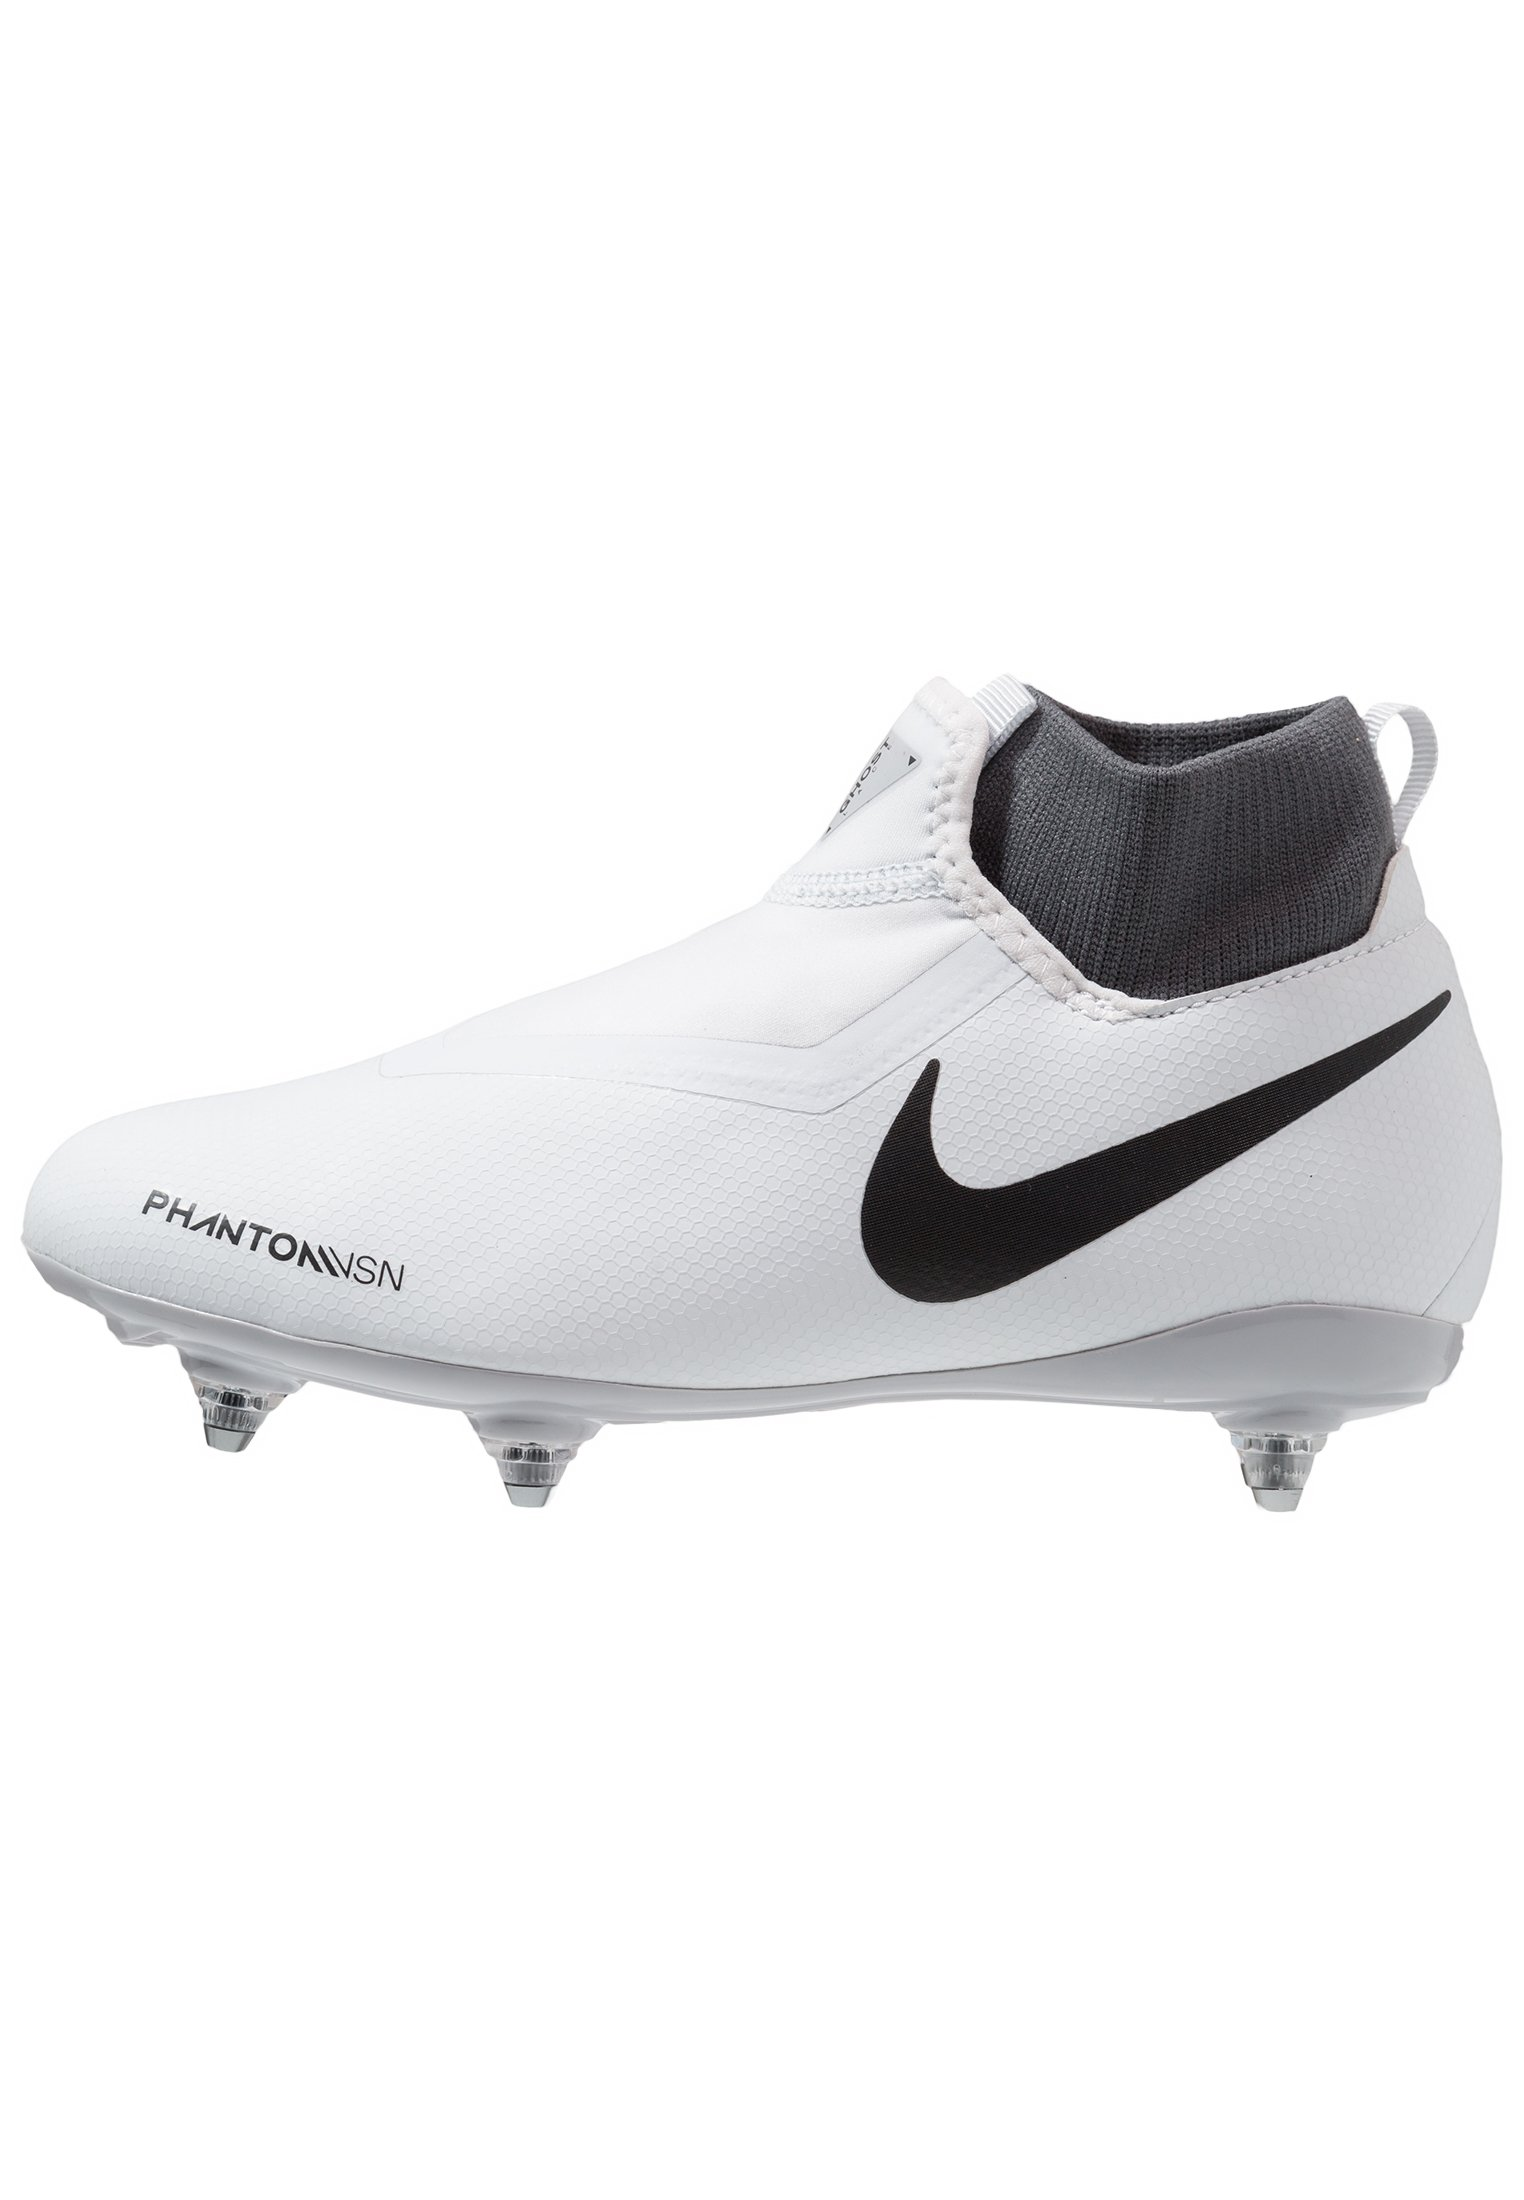 premium selection f8811 c2541 Nike Phantom Vision Academy DF Junior SG Football Boots